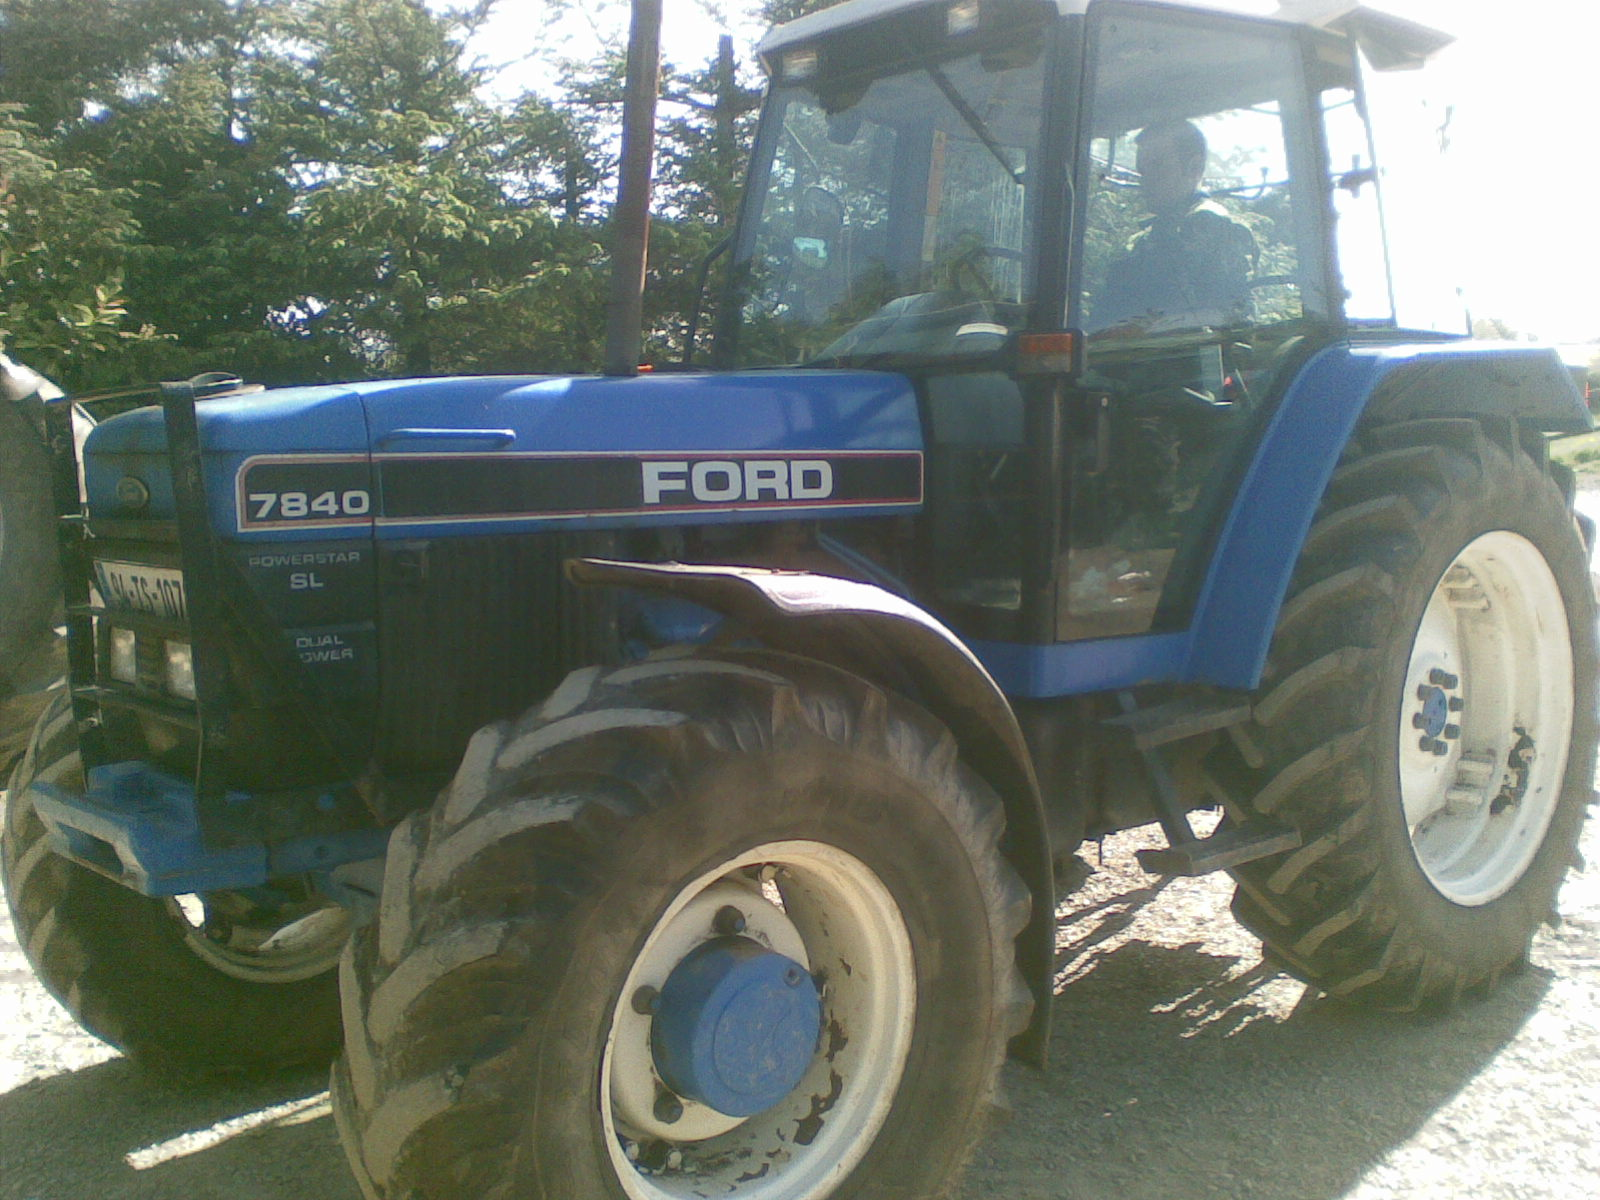 Ford 7840 photo - 1